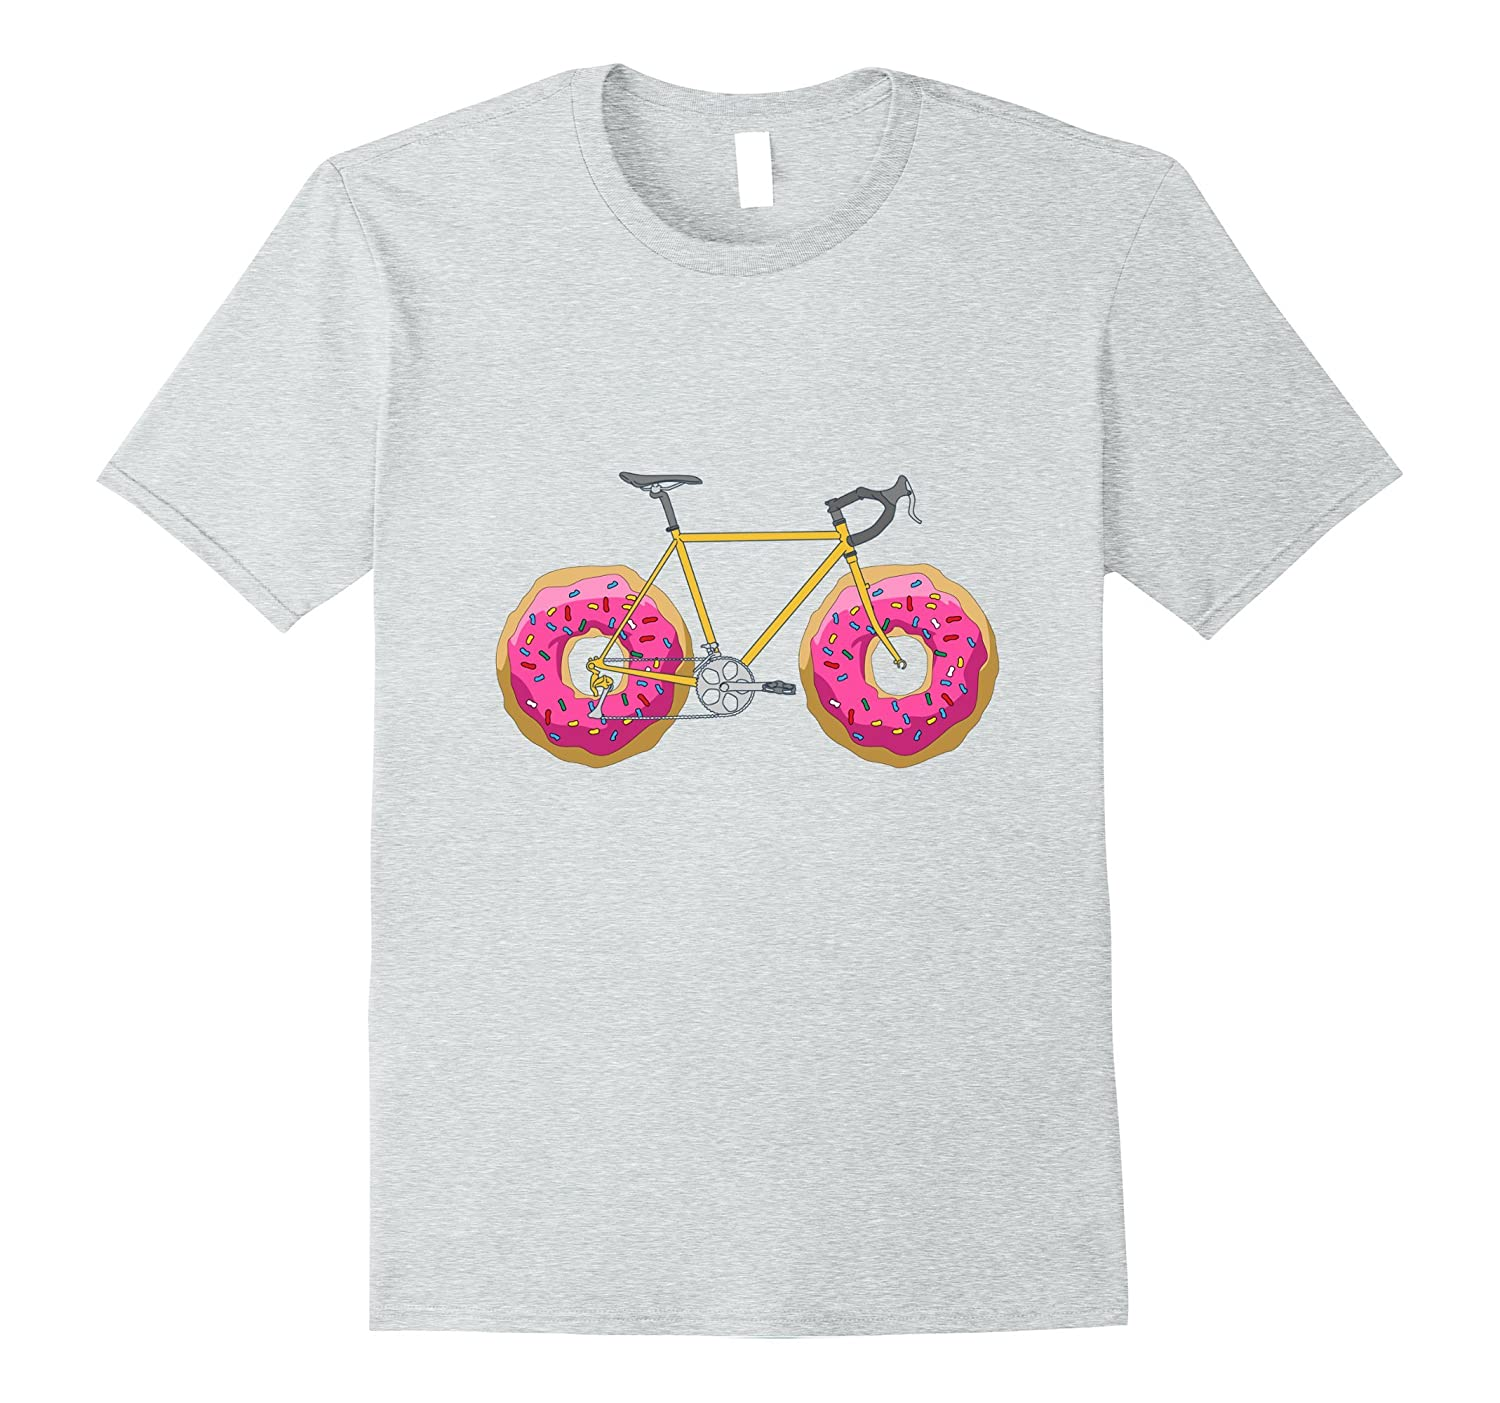 40ac28bc9 Donut Bicycle T-Shirt – Funny Bike Shirt for a Cyclist – Hntee.com